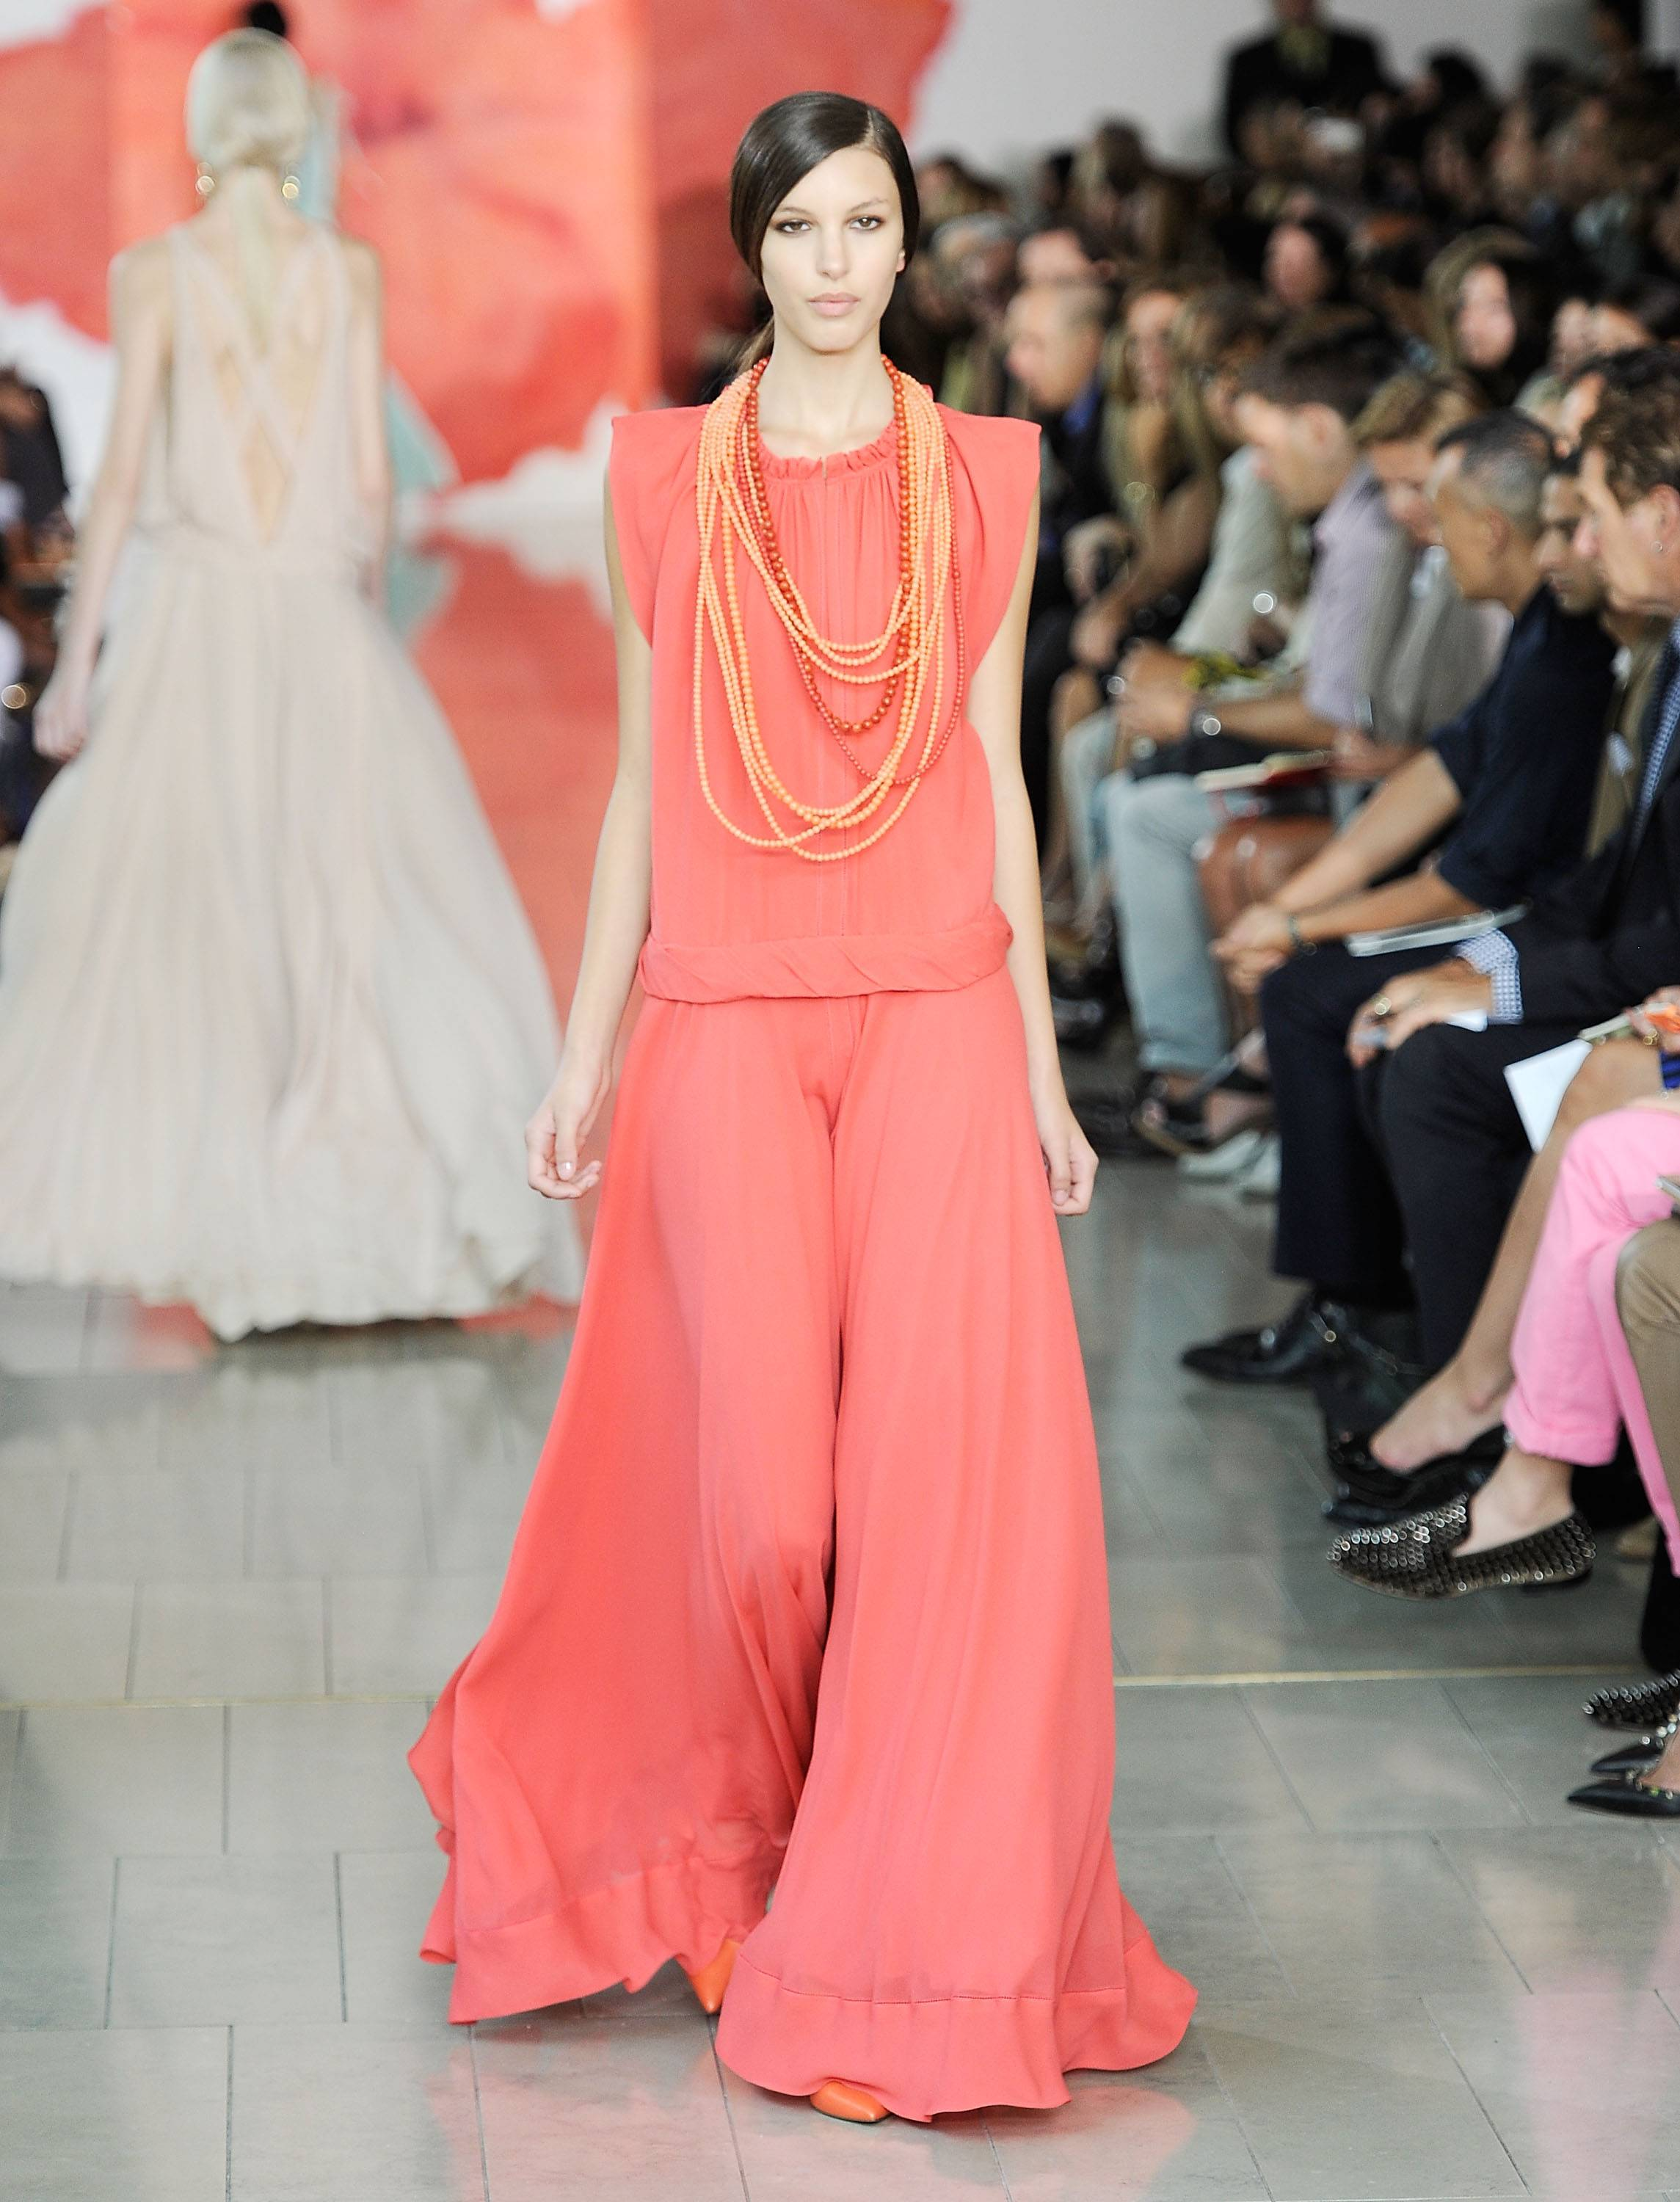 Tory Burch Runway Presentation, Mercedes Benz Fashion Week, s/s 2012